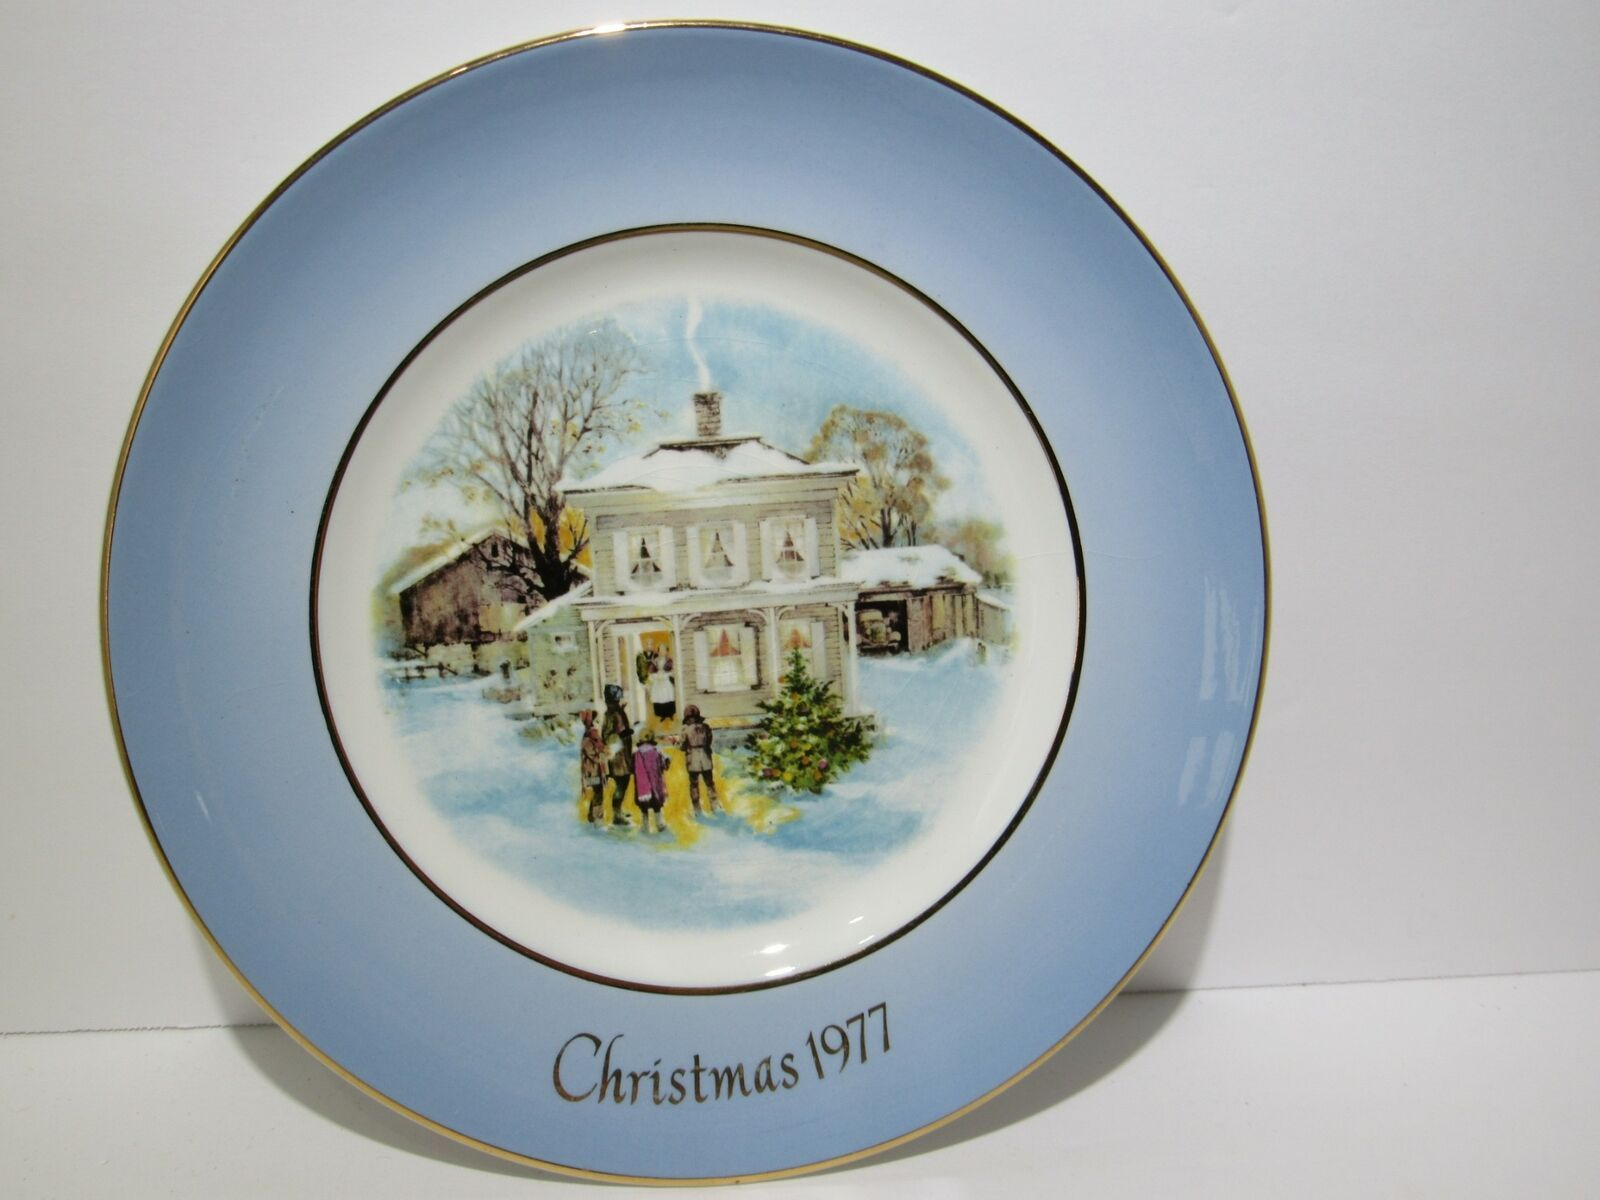 1977 Avon Christmas Plate Series Fifth Edition Carollers in the Snow in Box vtg image 2